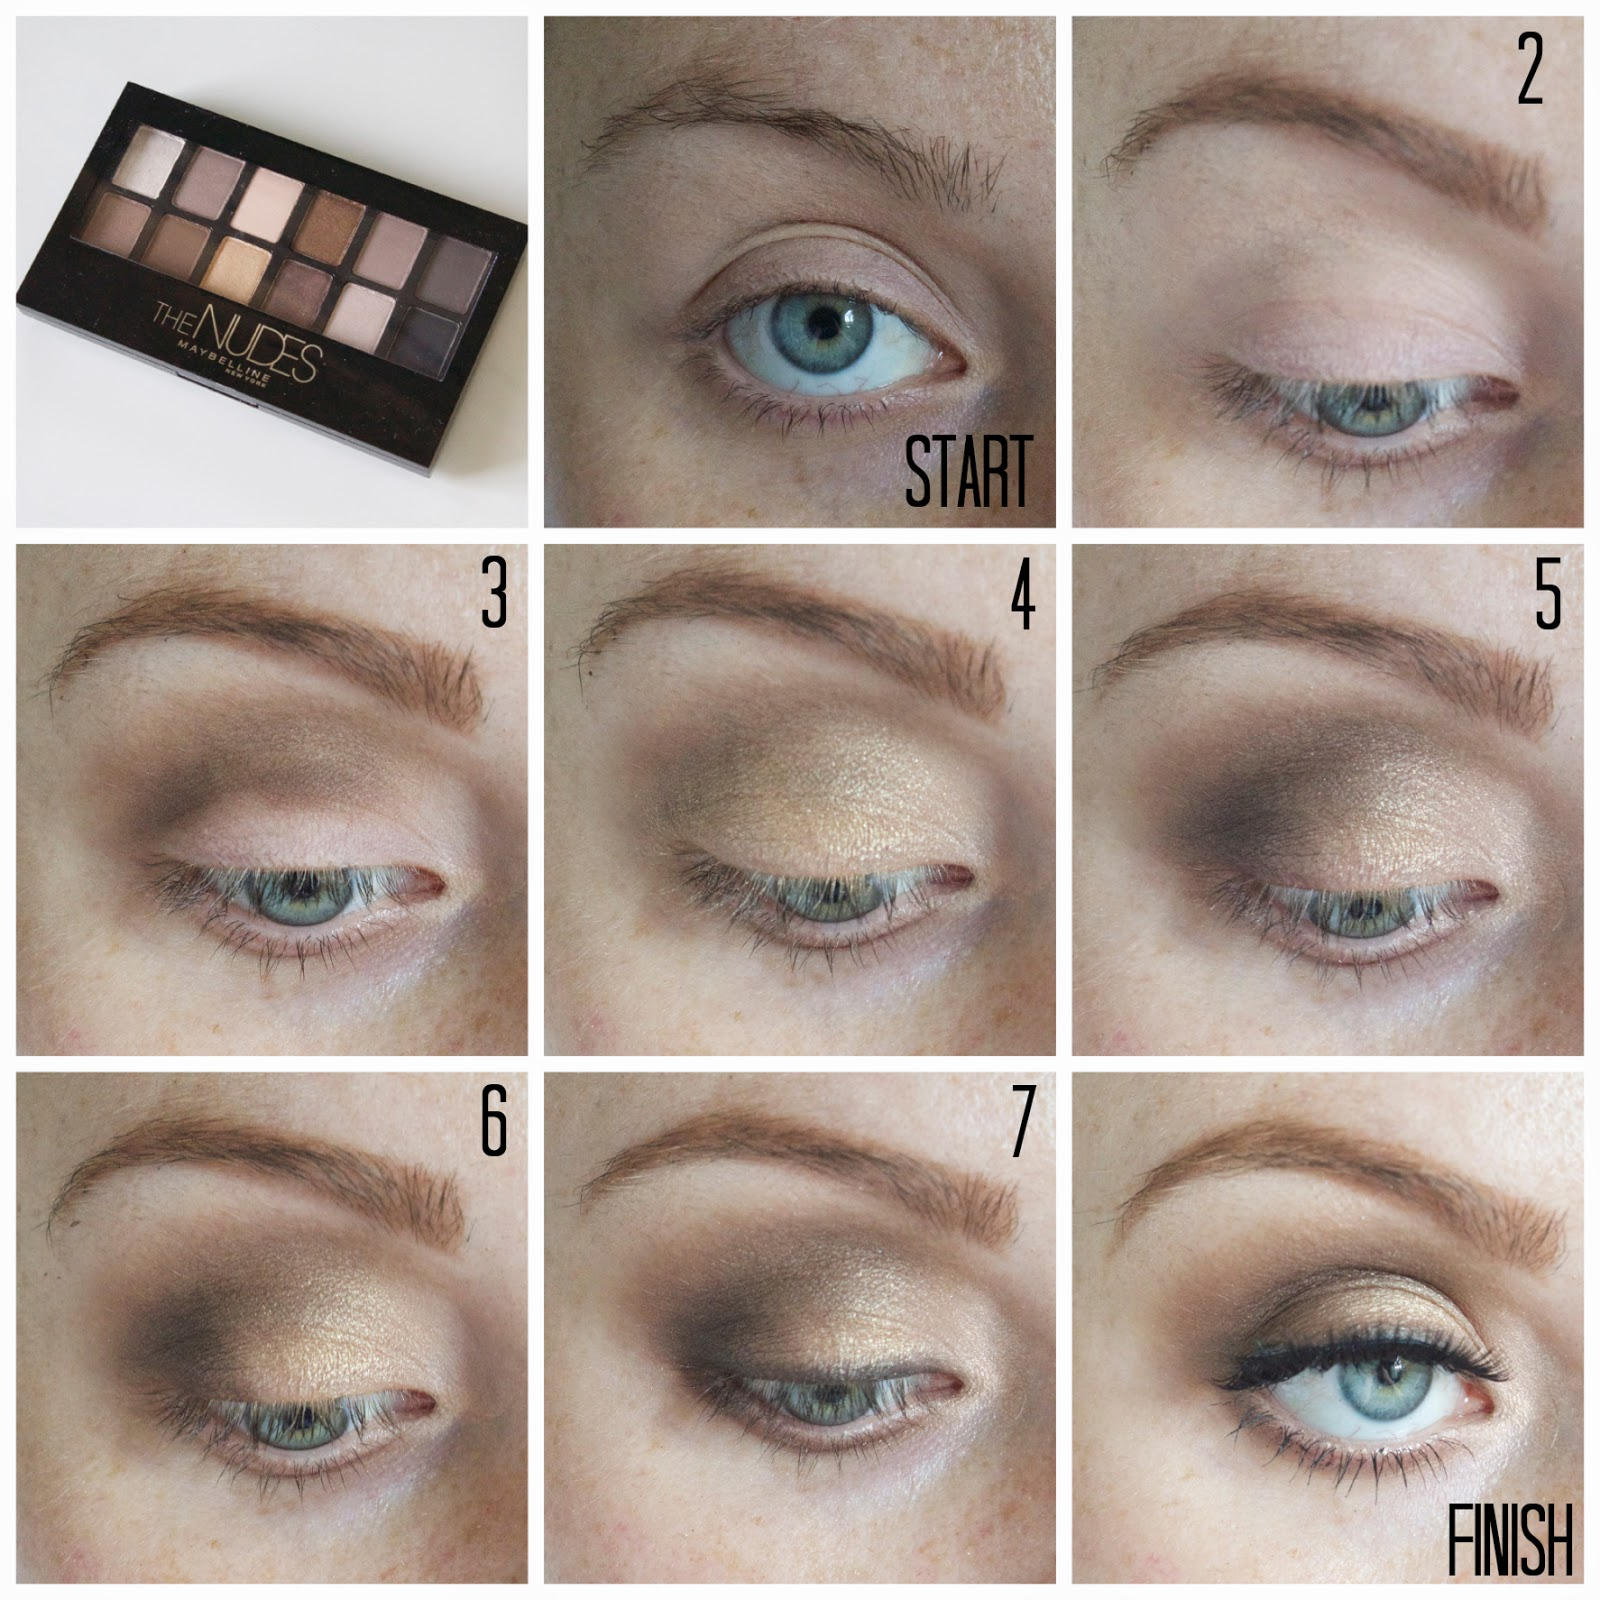 Maybelline The Nudes Palette | Review, Swatches + Eye Makeup Pictorial | www.annemariemitchell.com